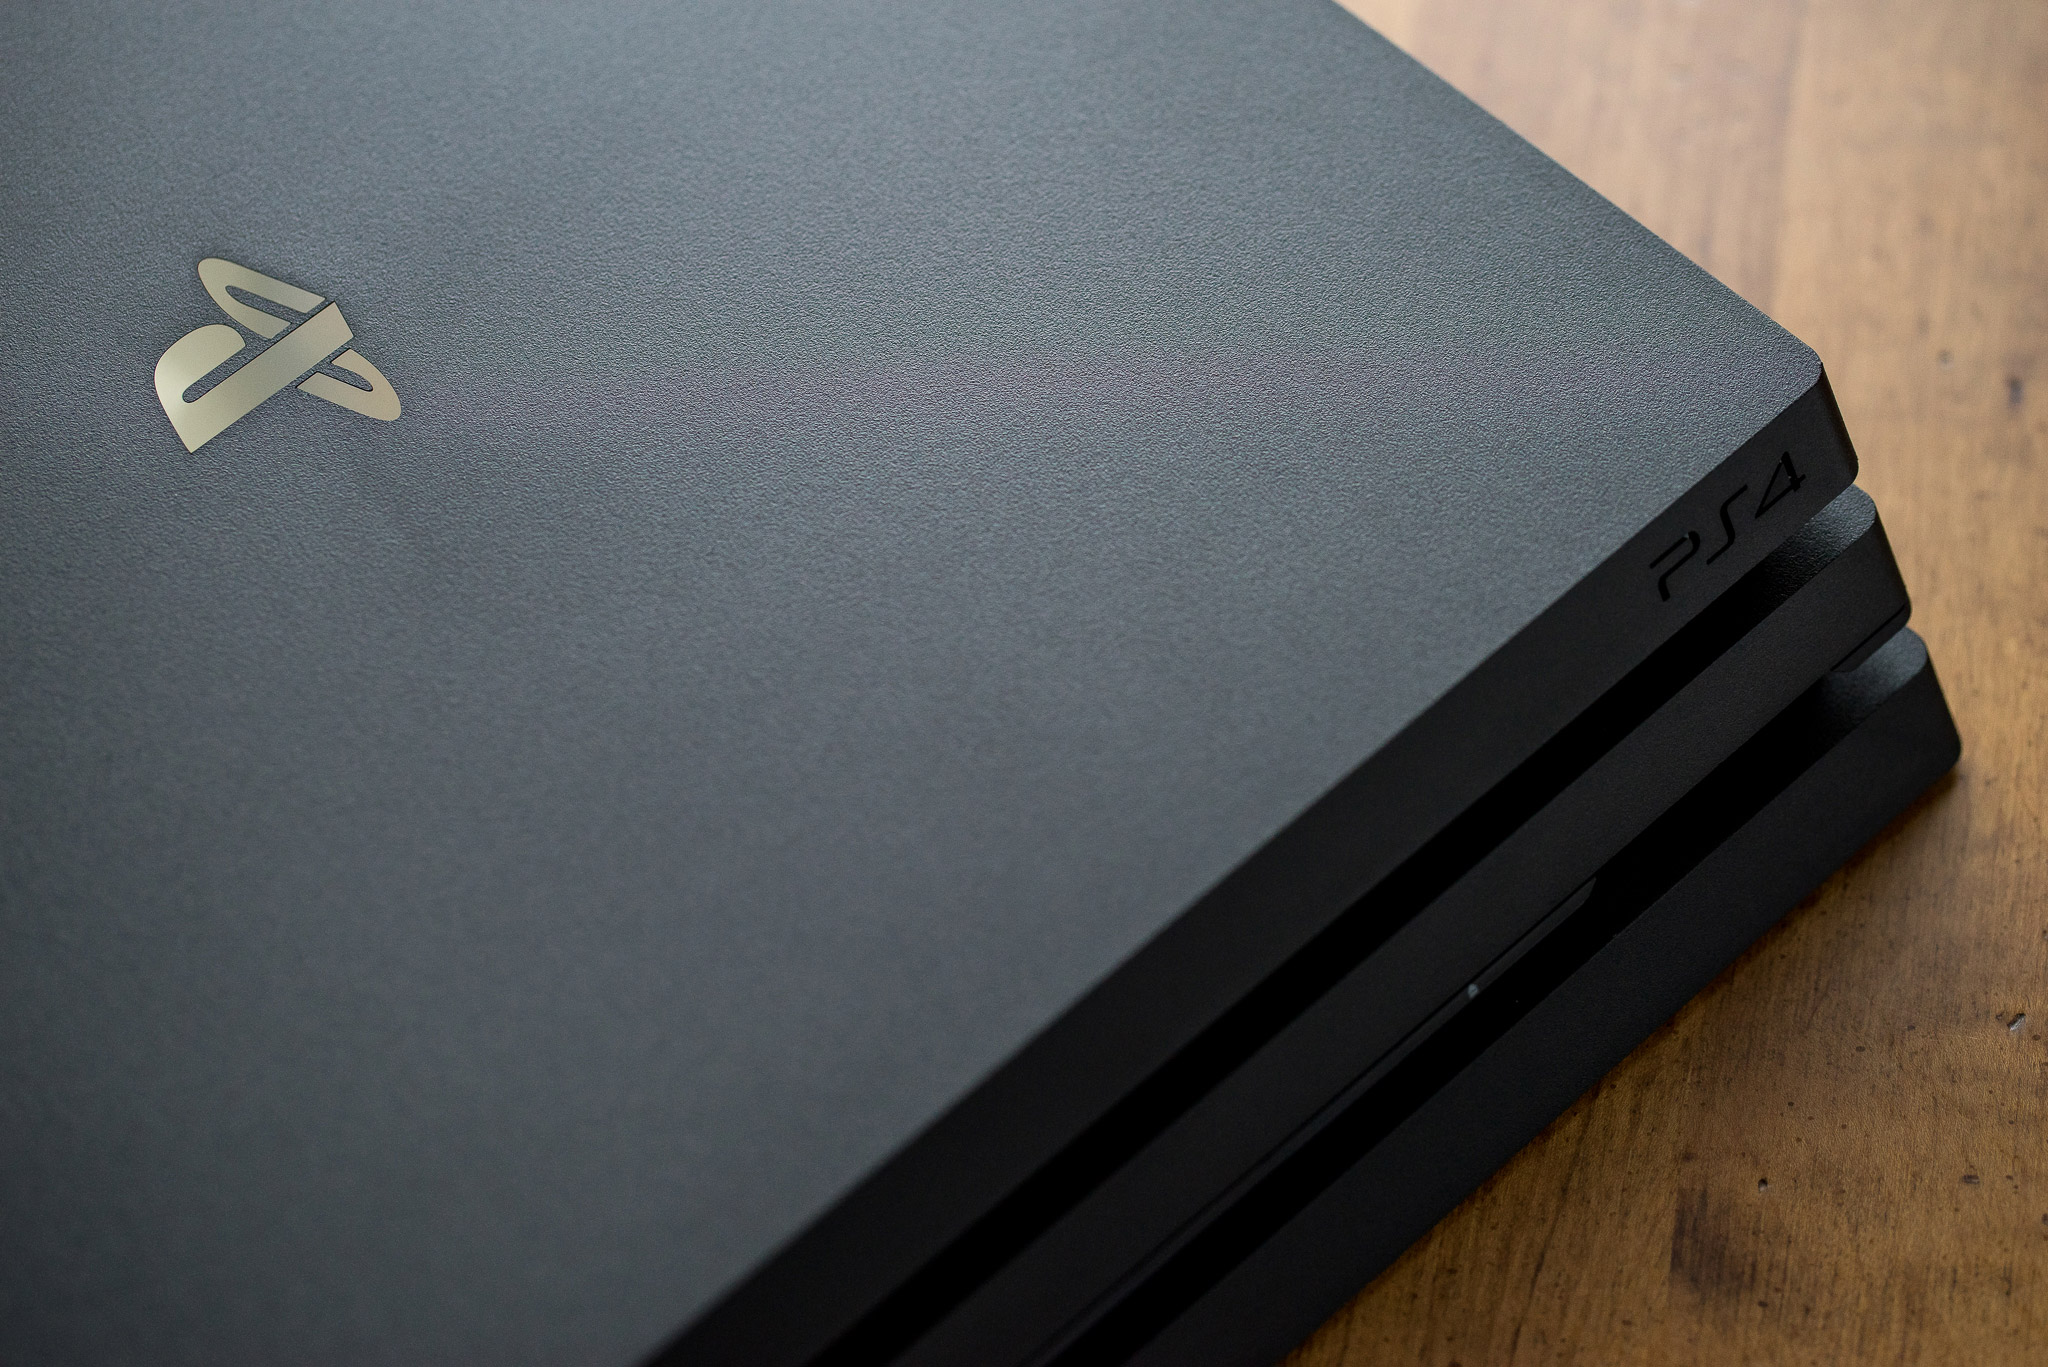 Where and how to buy a PlayStation 4 Pro